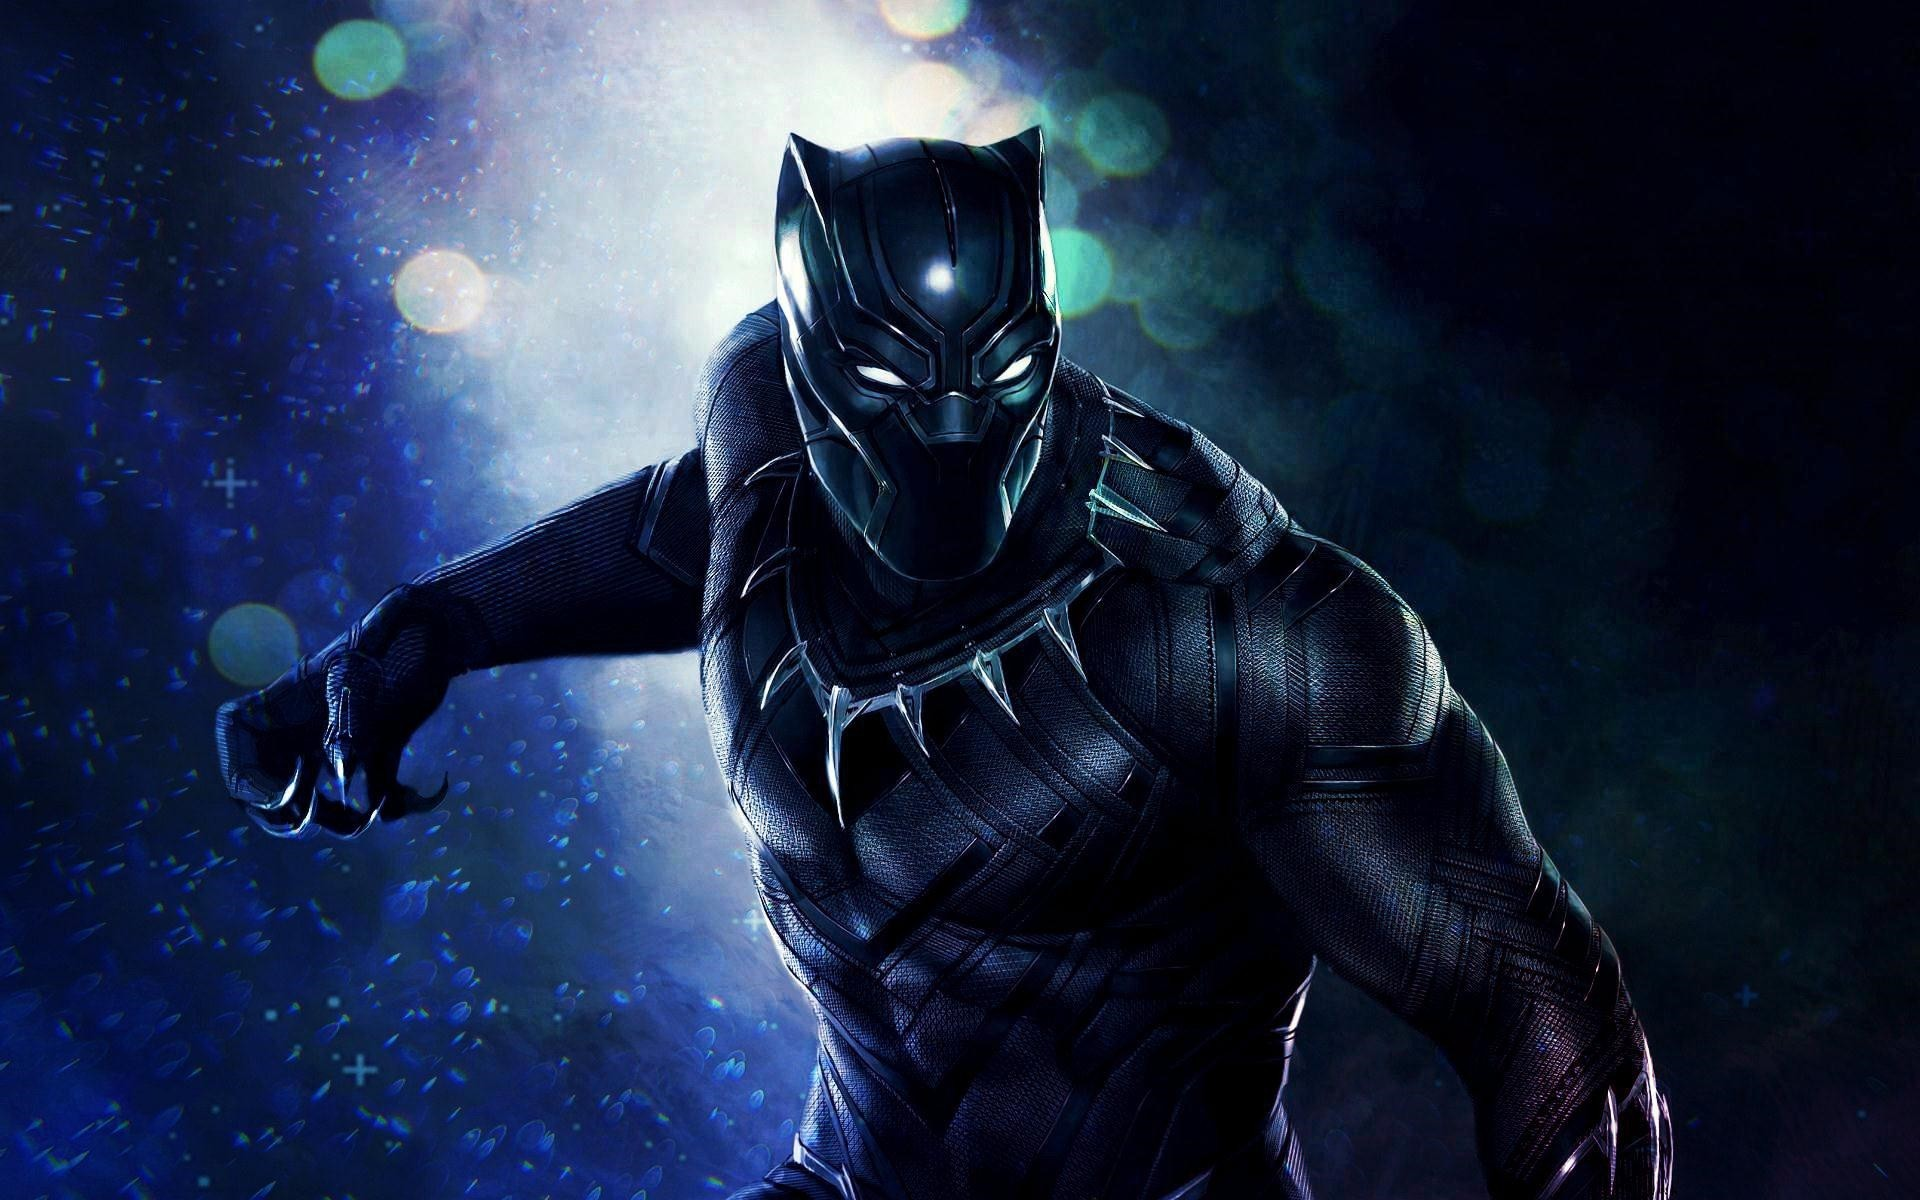 Unduh 300 Wallpaper Black Panther Hd Android